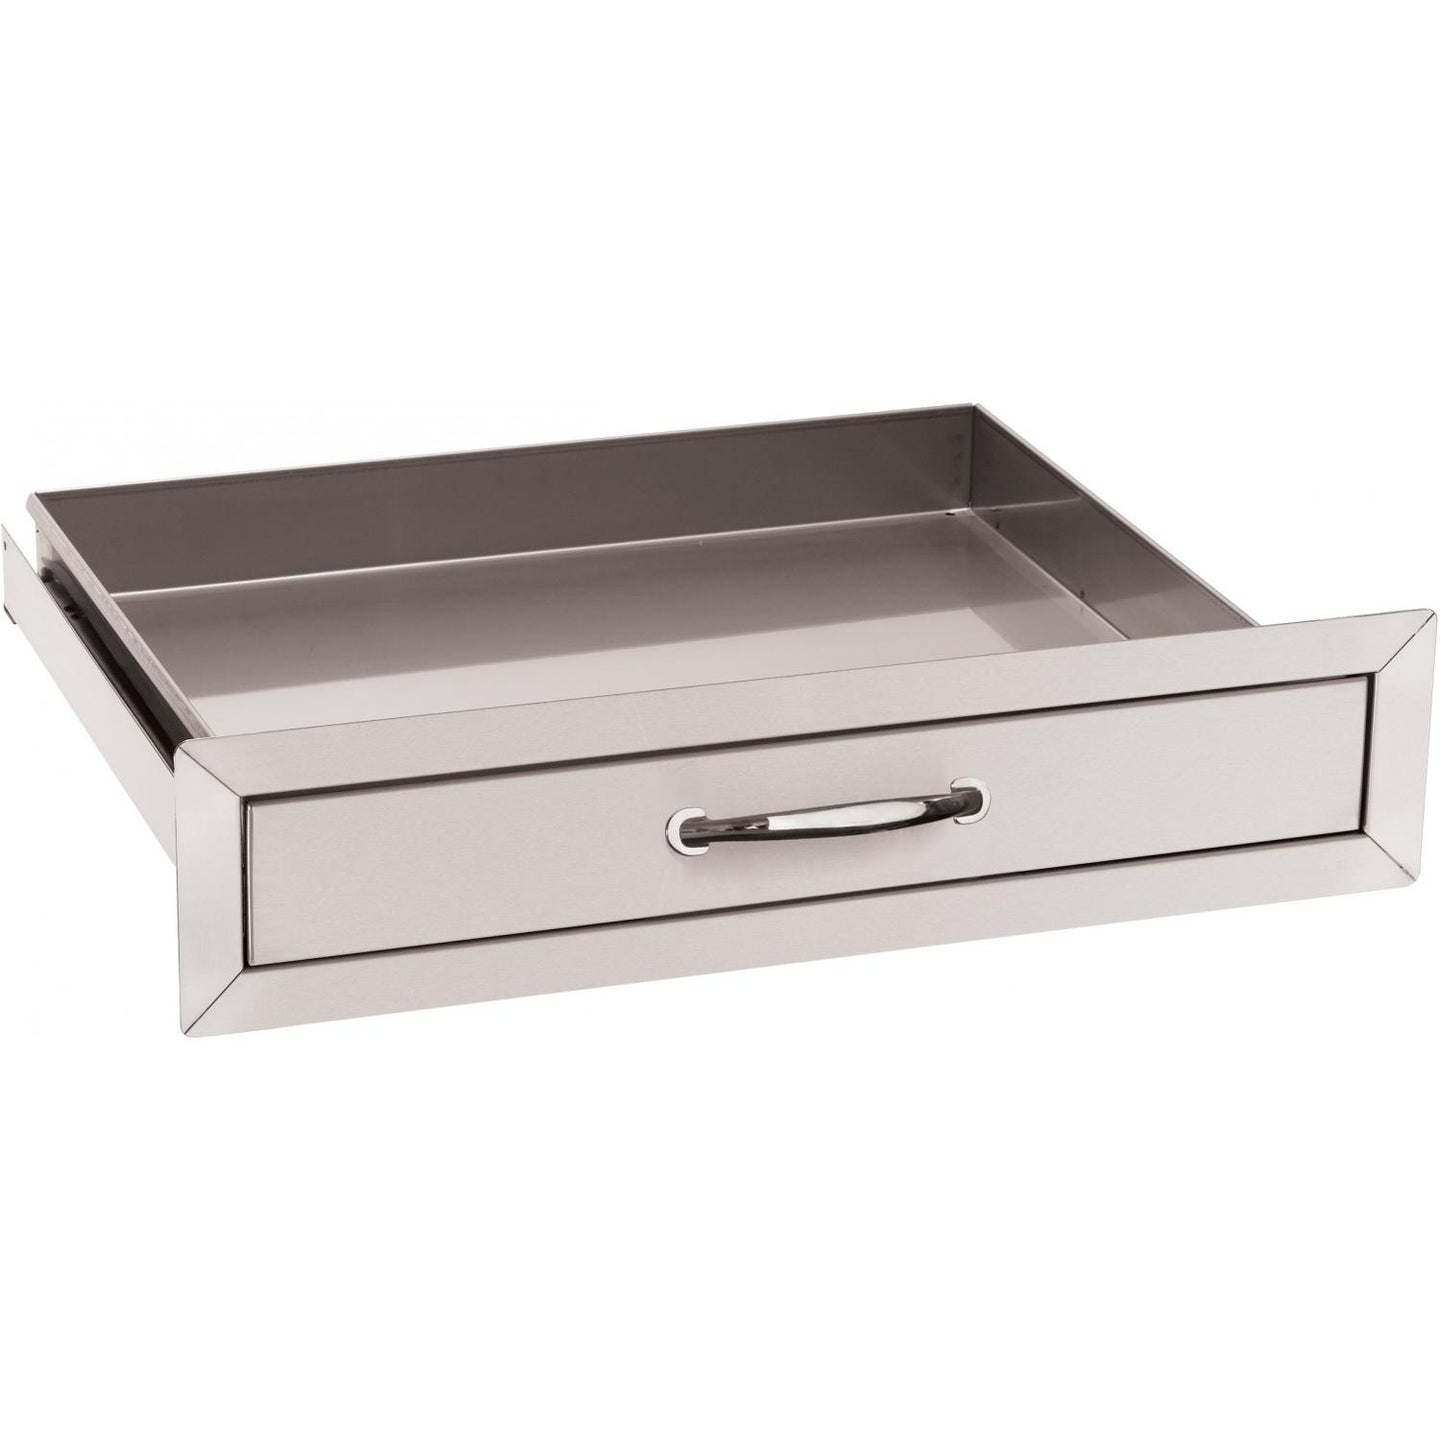 Summerset 24-Inch Stainless Steel Flush Mount Single Utility Drawer - SSUD